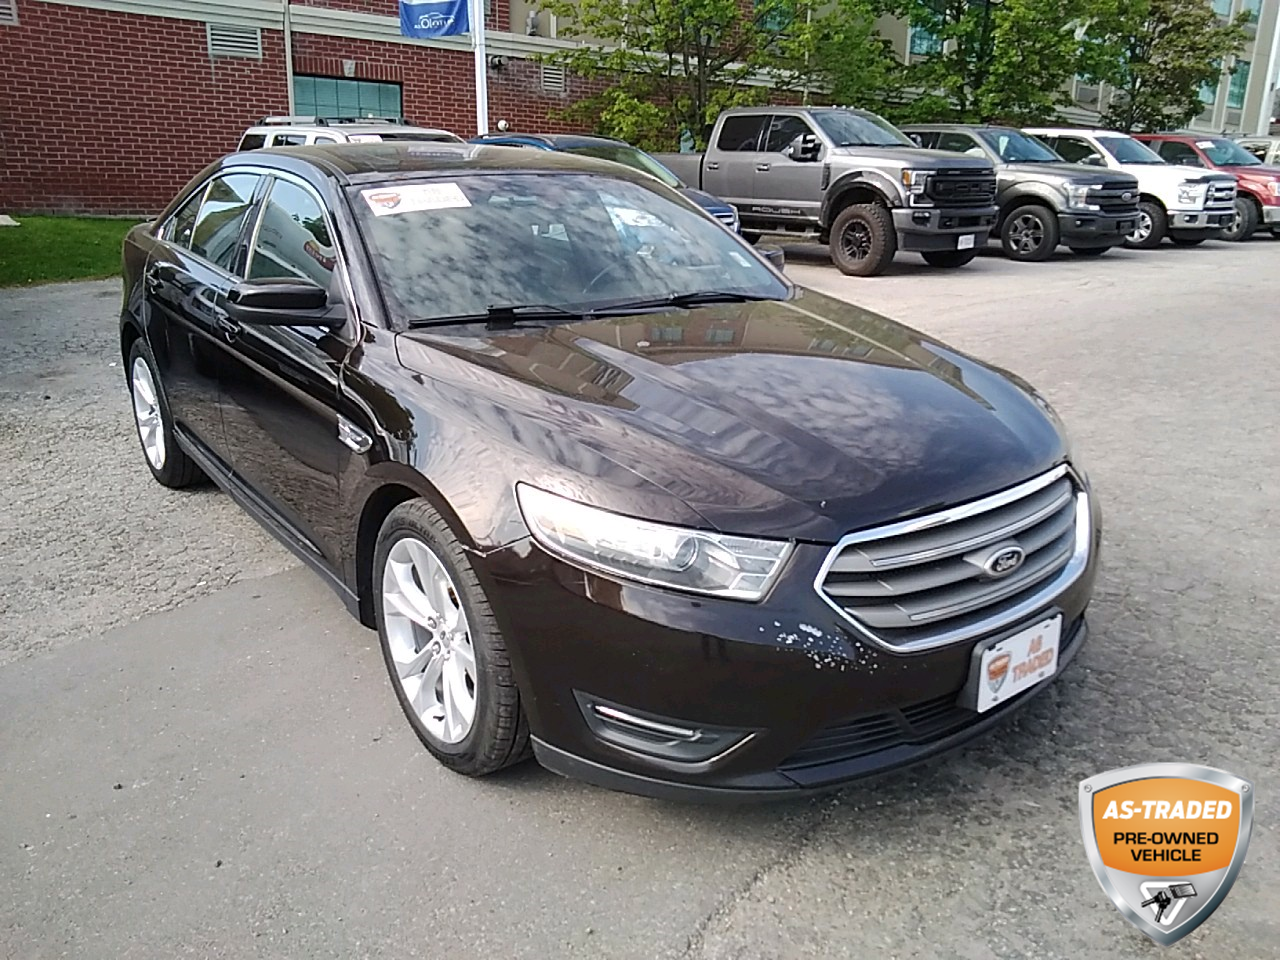 used 2013 Ford Taurus car, priced at $6,998